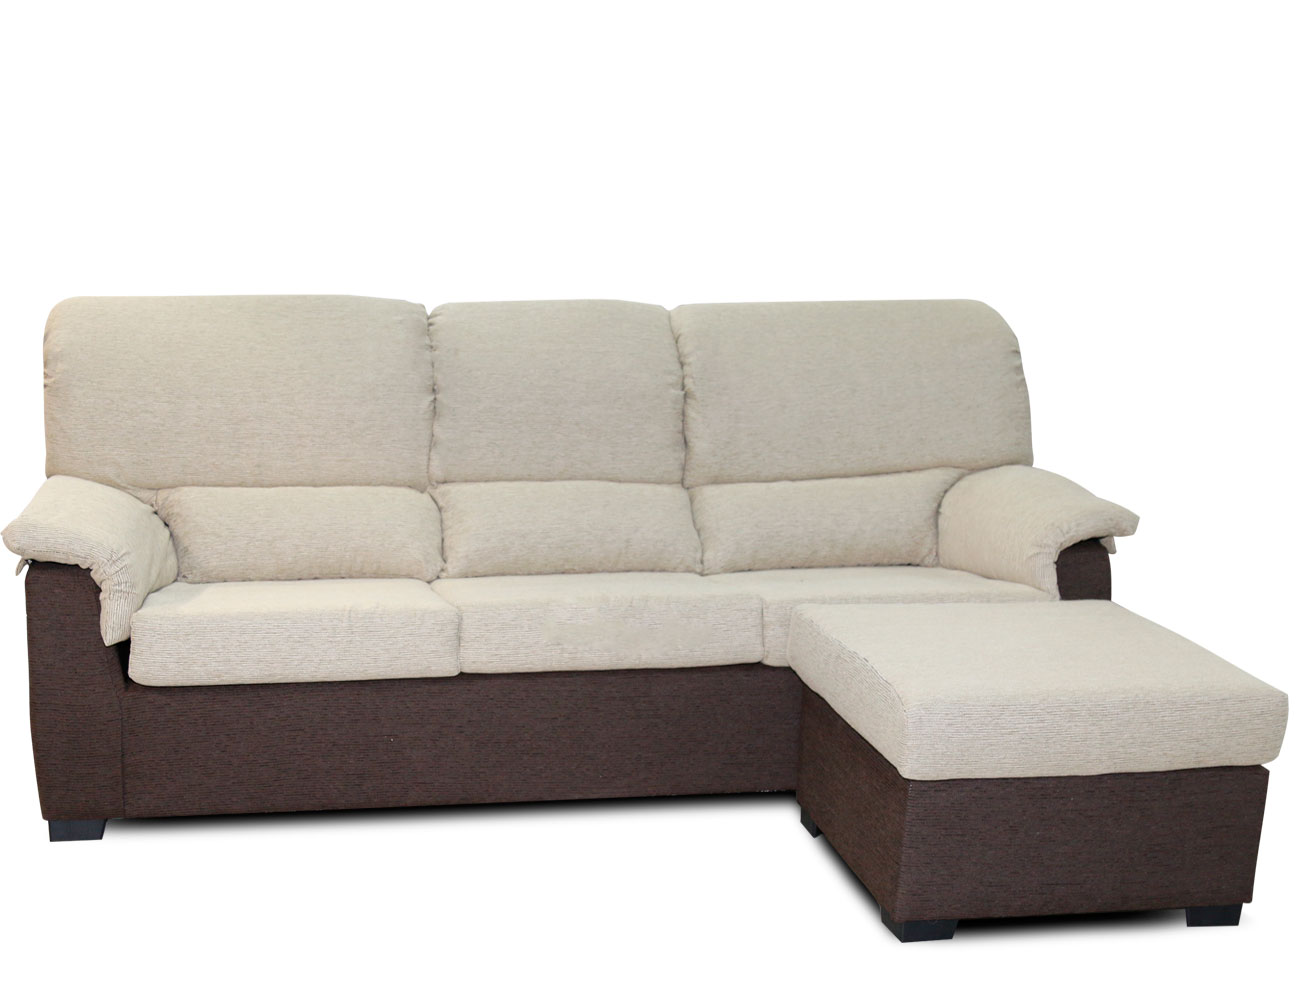 Sof chaiselongue barato con puf reversible 15285 for Sofas ofertas